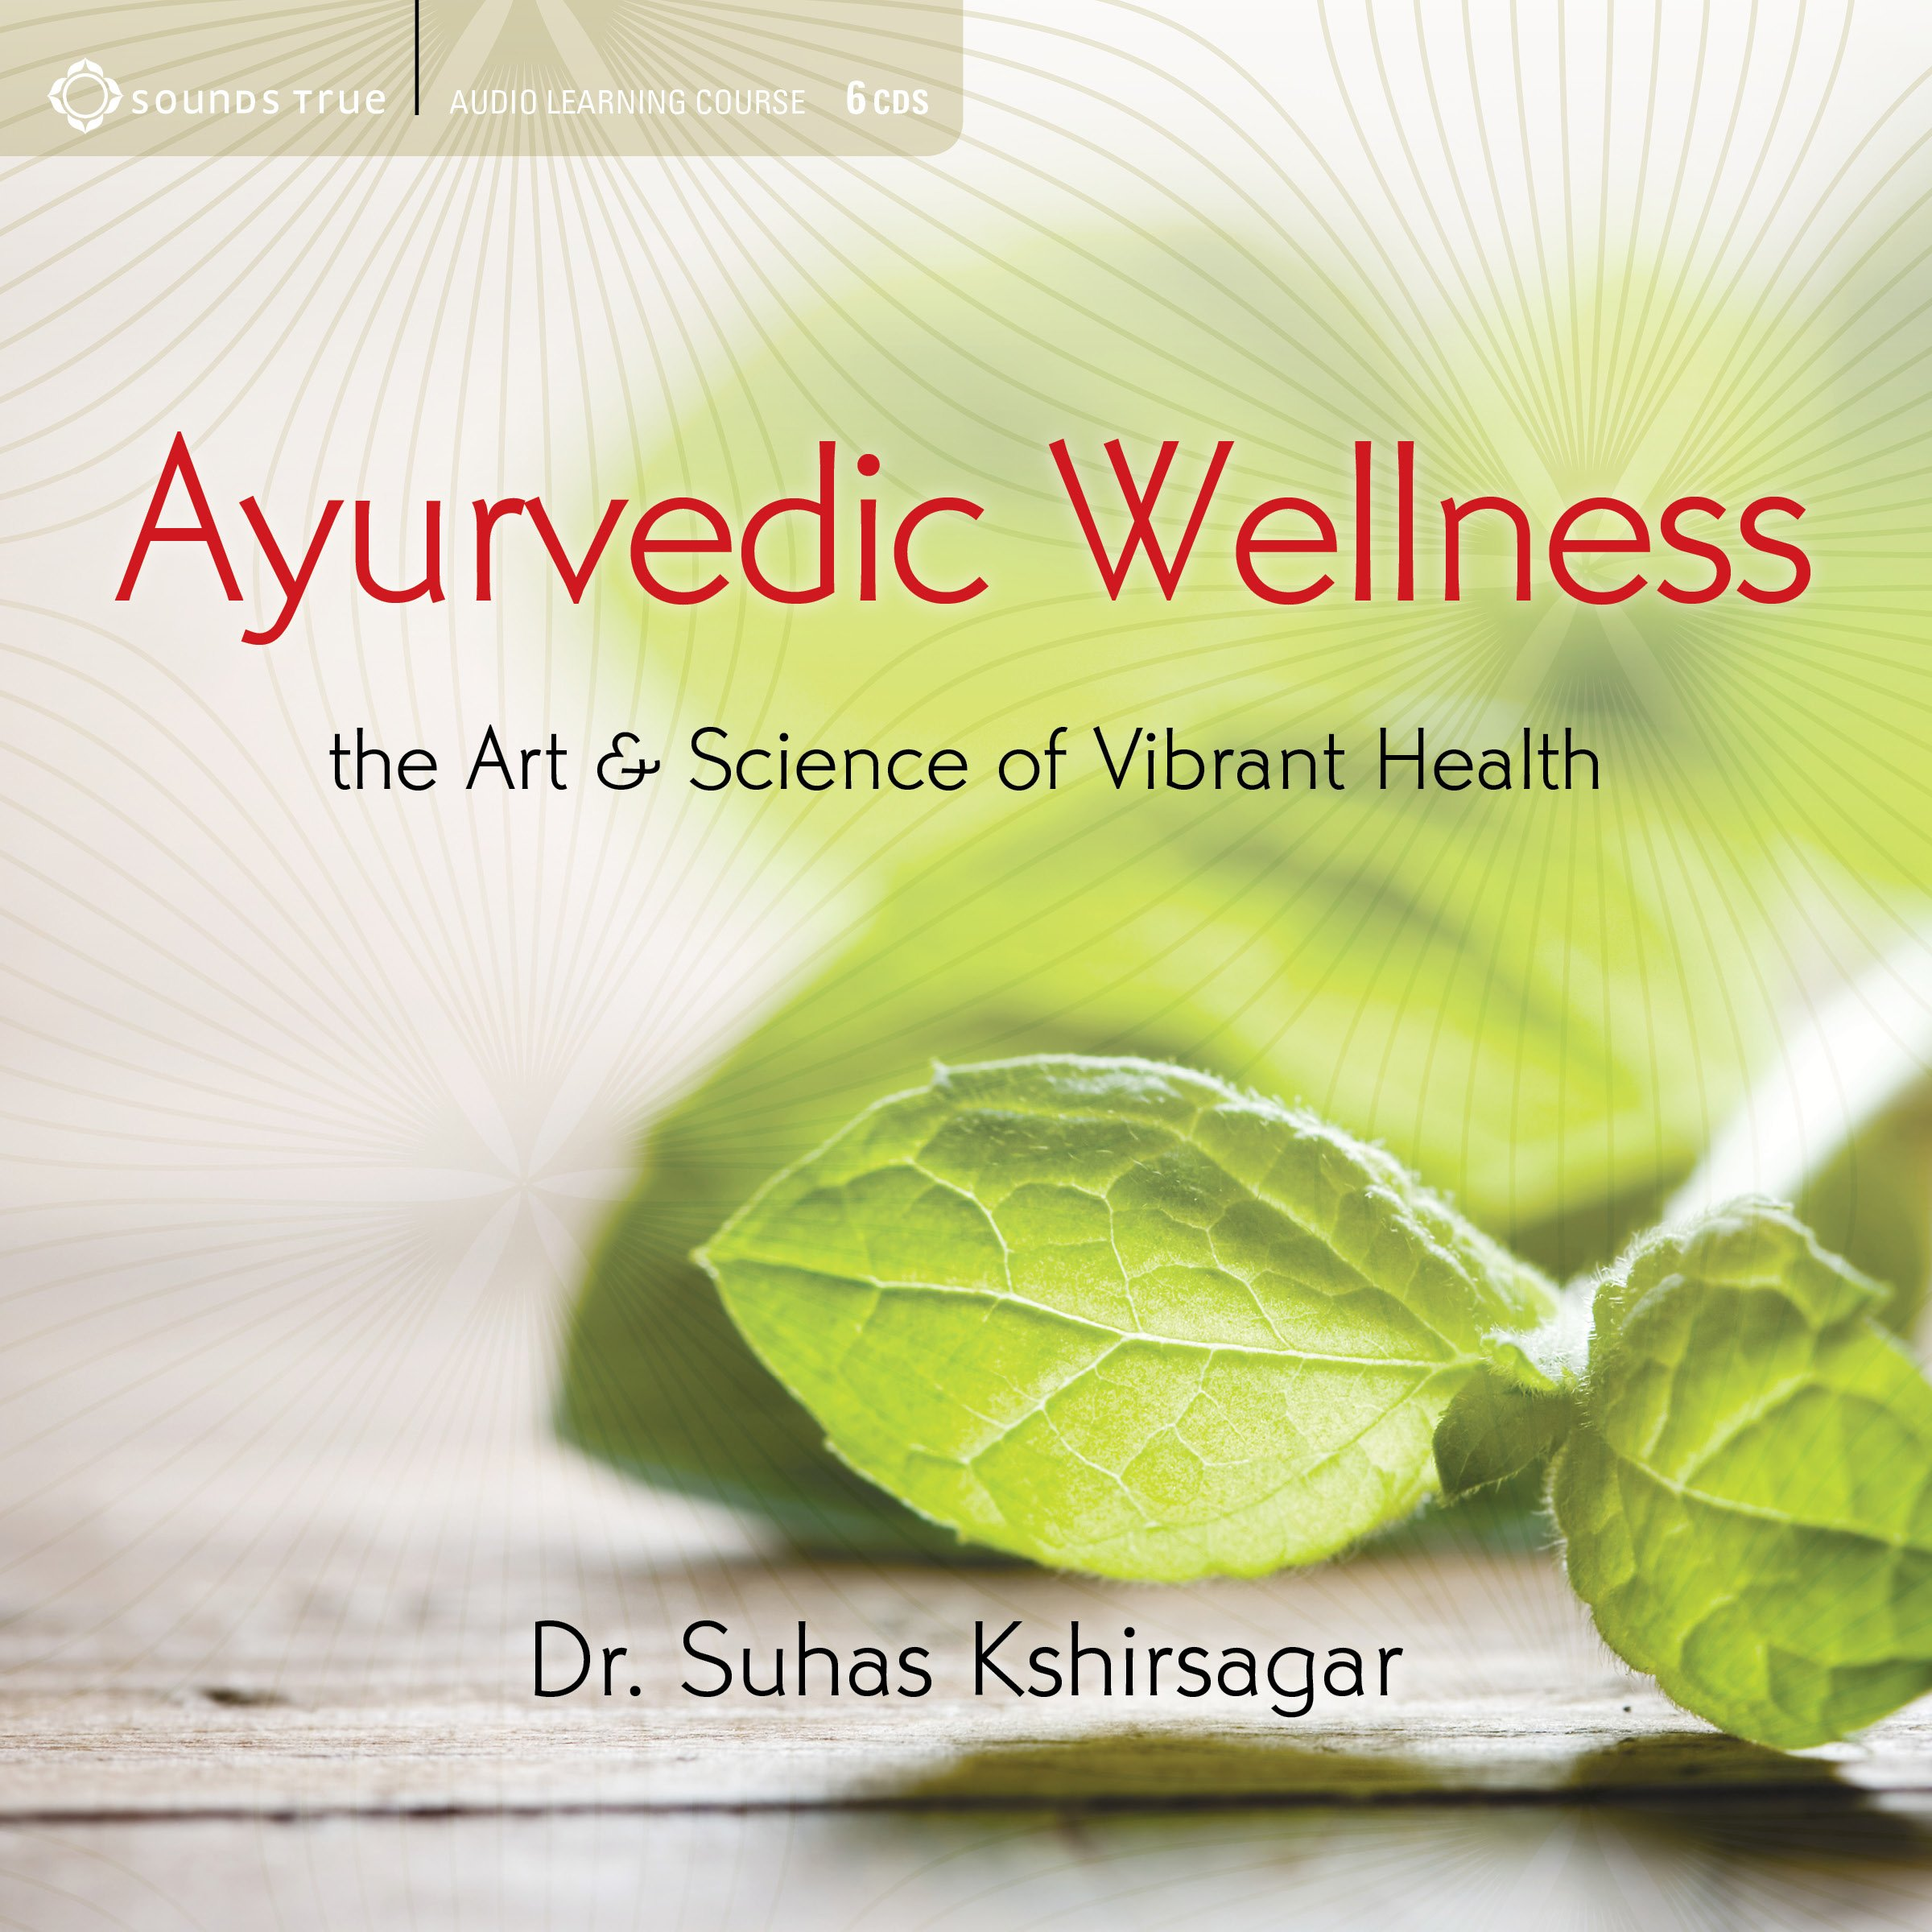 Ayurvedic Wellness: The Art and Science of Vibrant Health